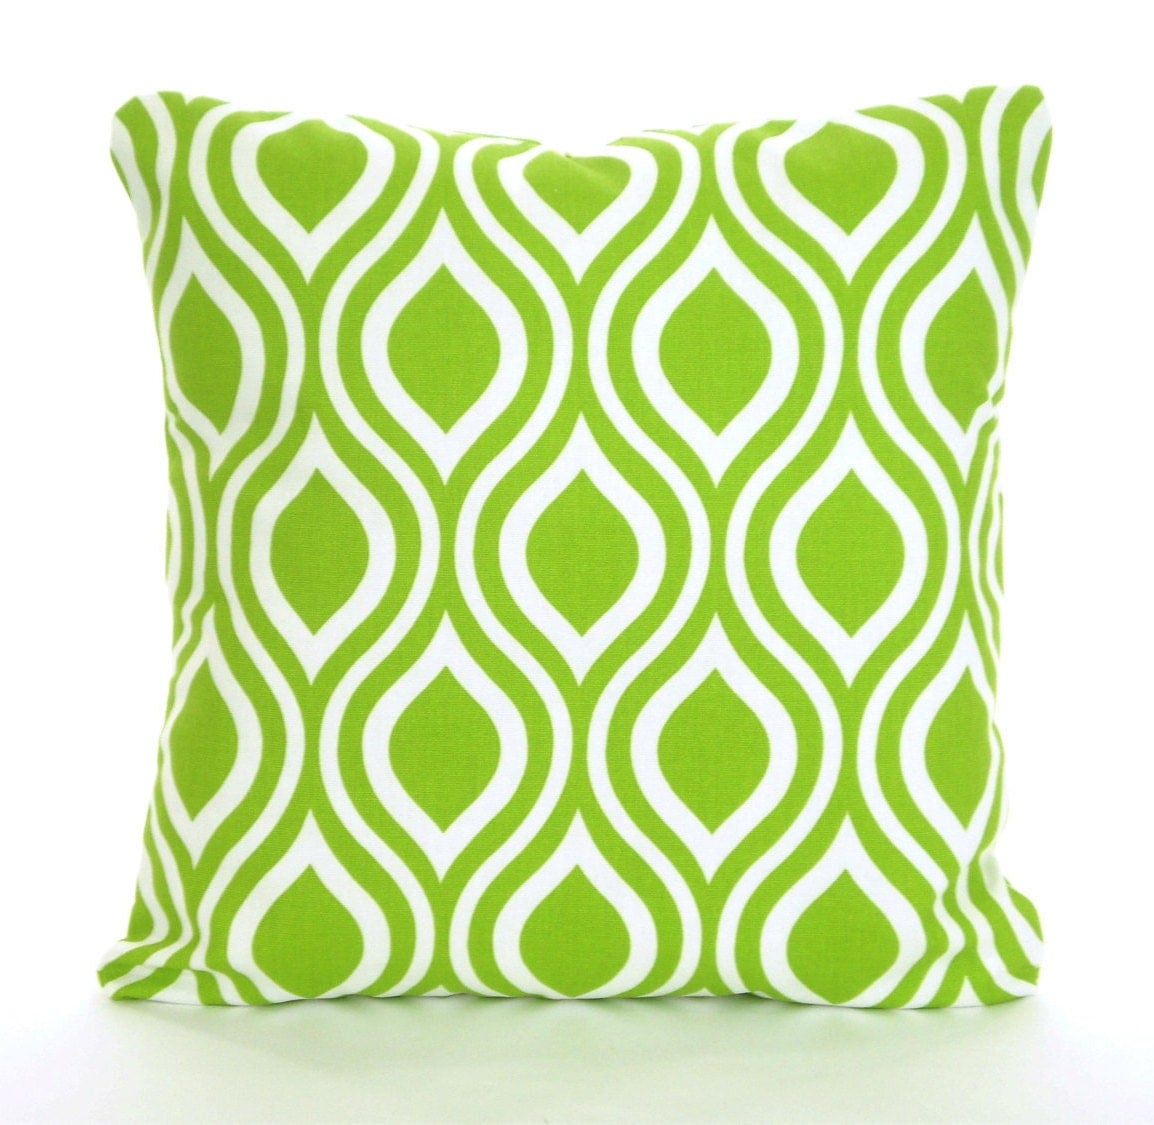 Decorative Pillows For Bed Green : Green Pillow Covers Decorative Throw Pillows Cushion Covers